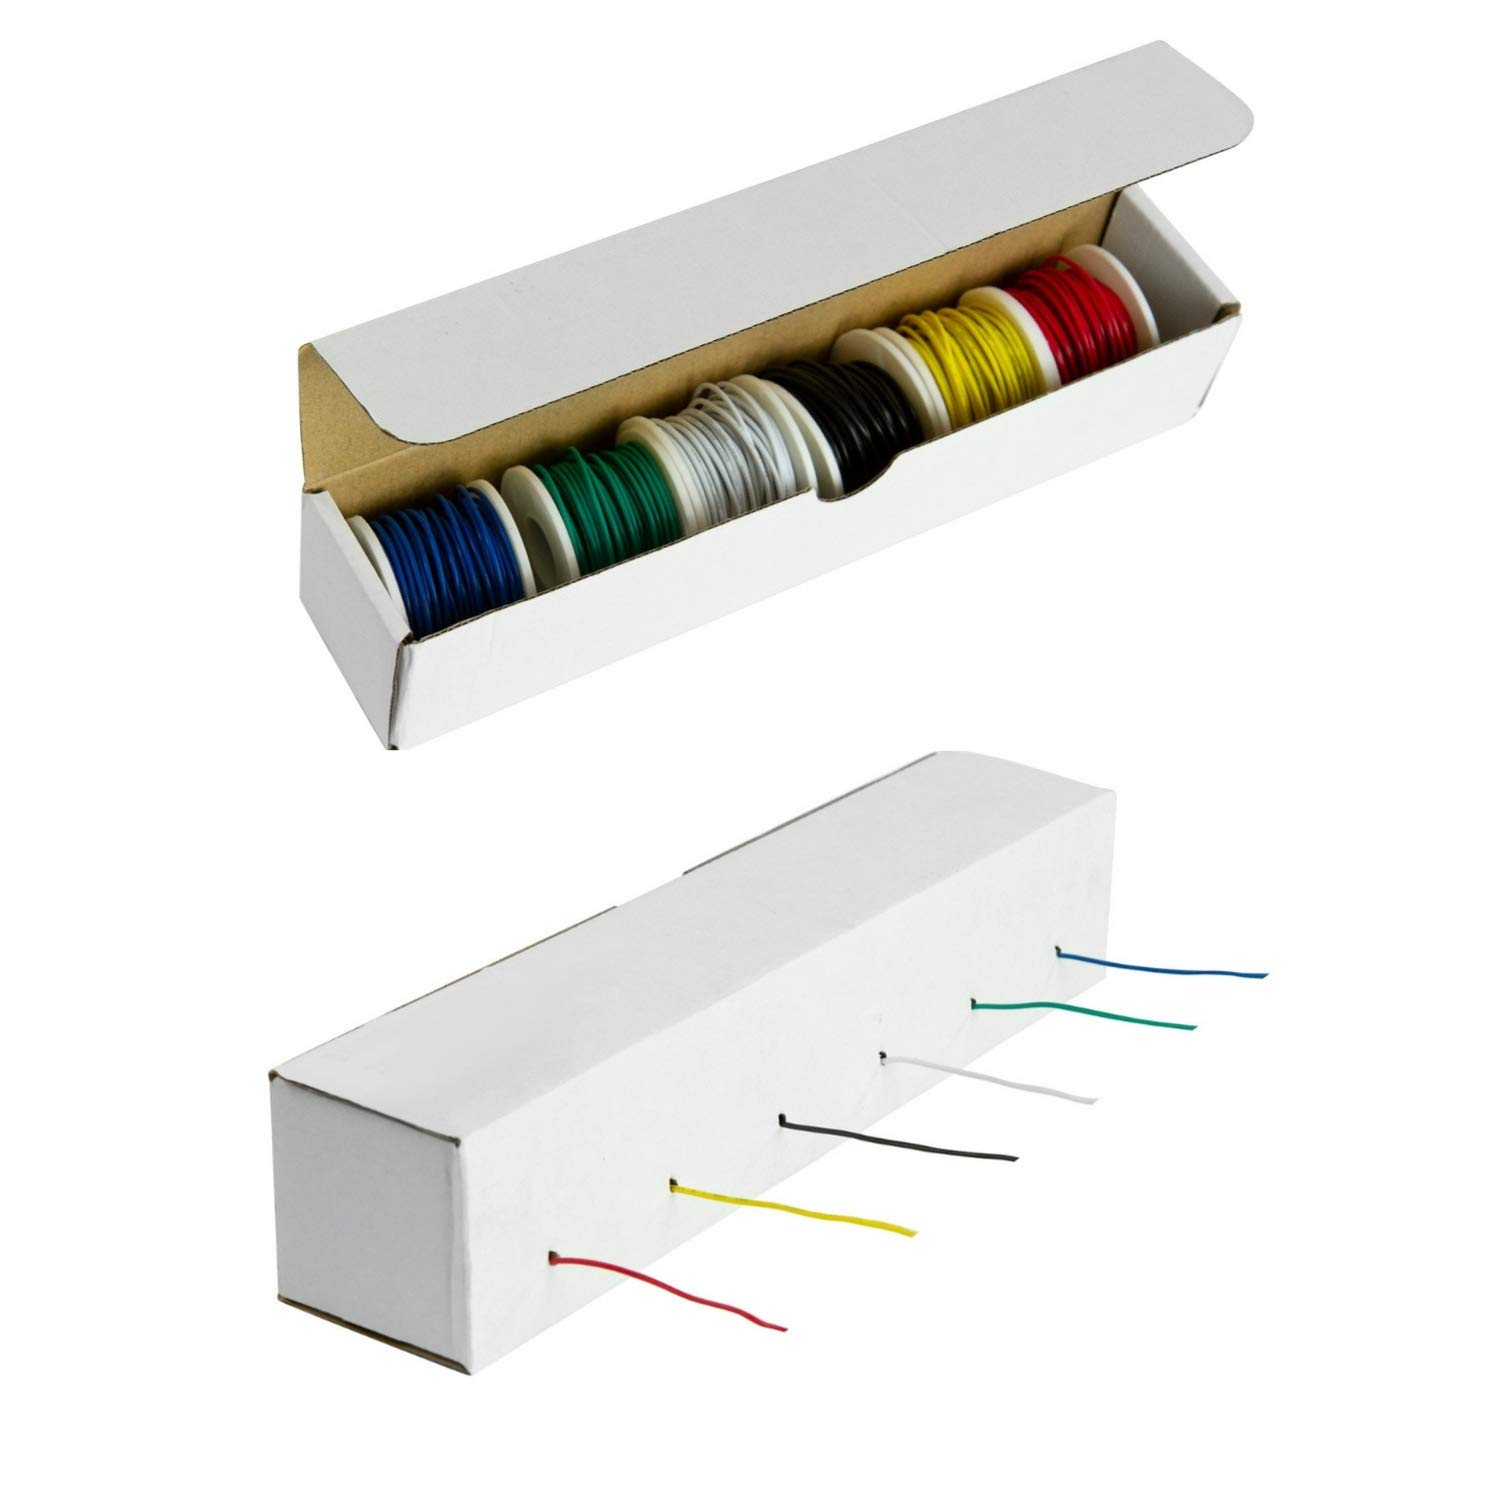 Houseables Electrical Wire Kit, Solid Hook Up Electric Wiring, 6 x 22 Gauge Spools (27.5 Feet Each), Red, Black, Green, Yellow, White & Blue AWG Assortment, Electronic Hookup Core Wires, Thin Coated